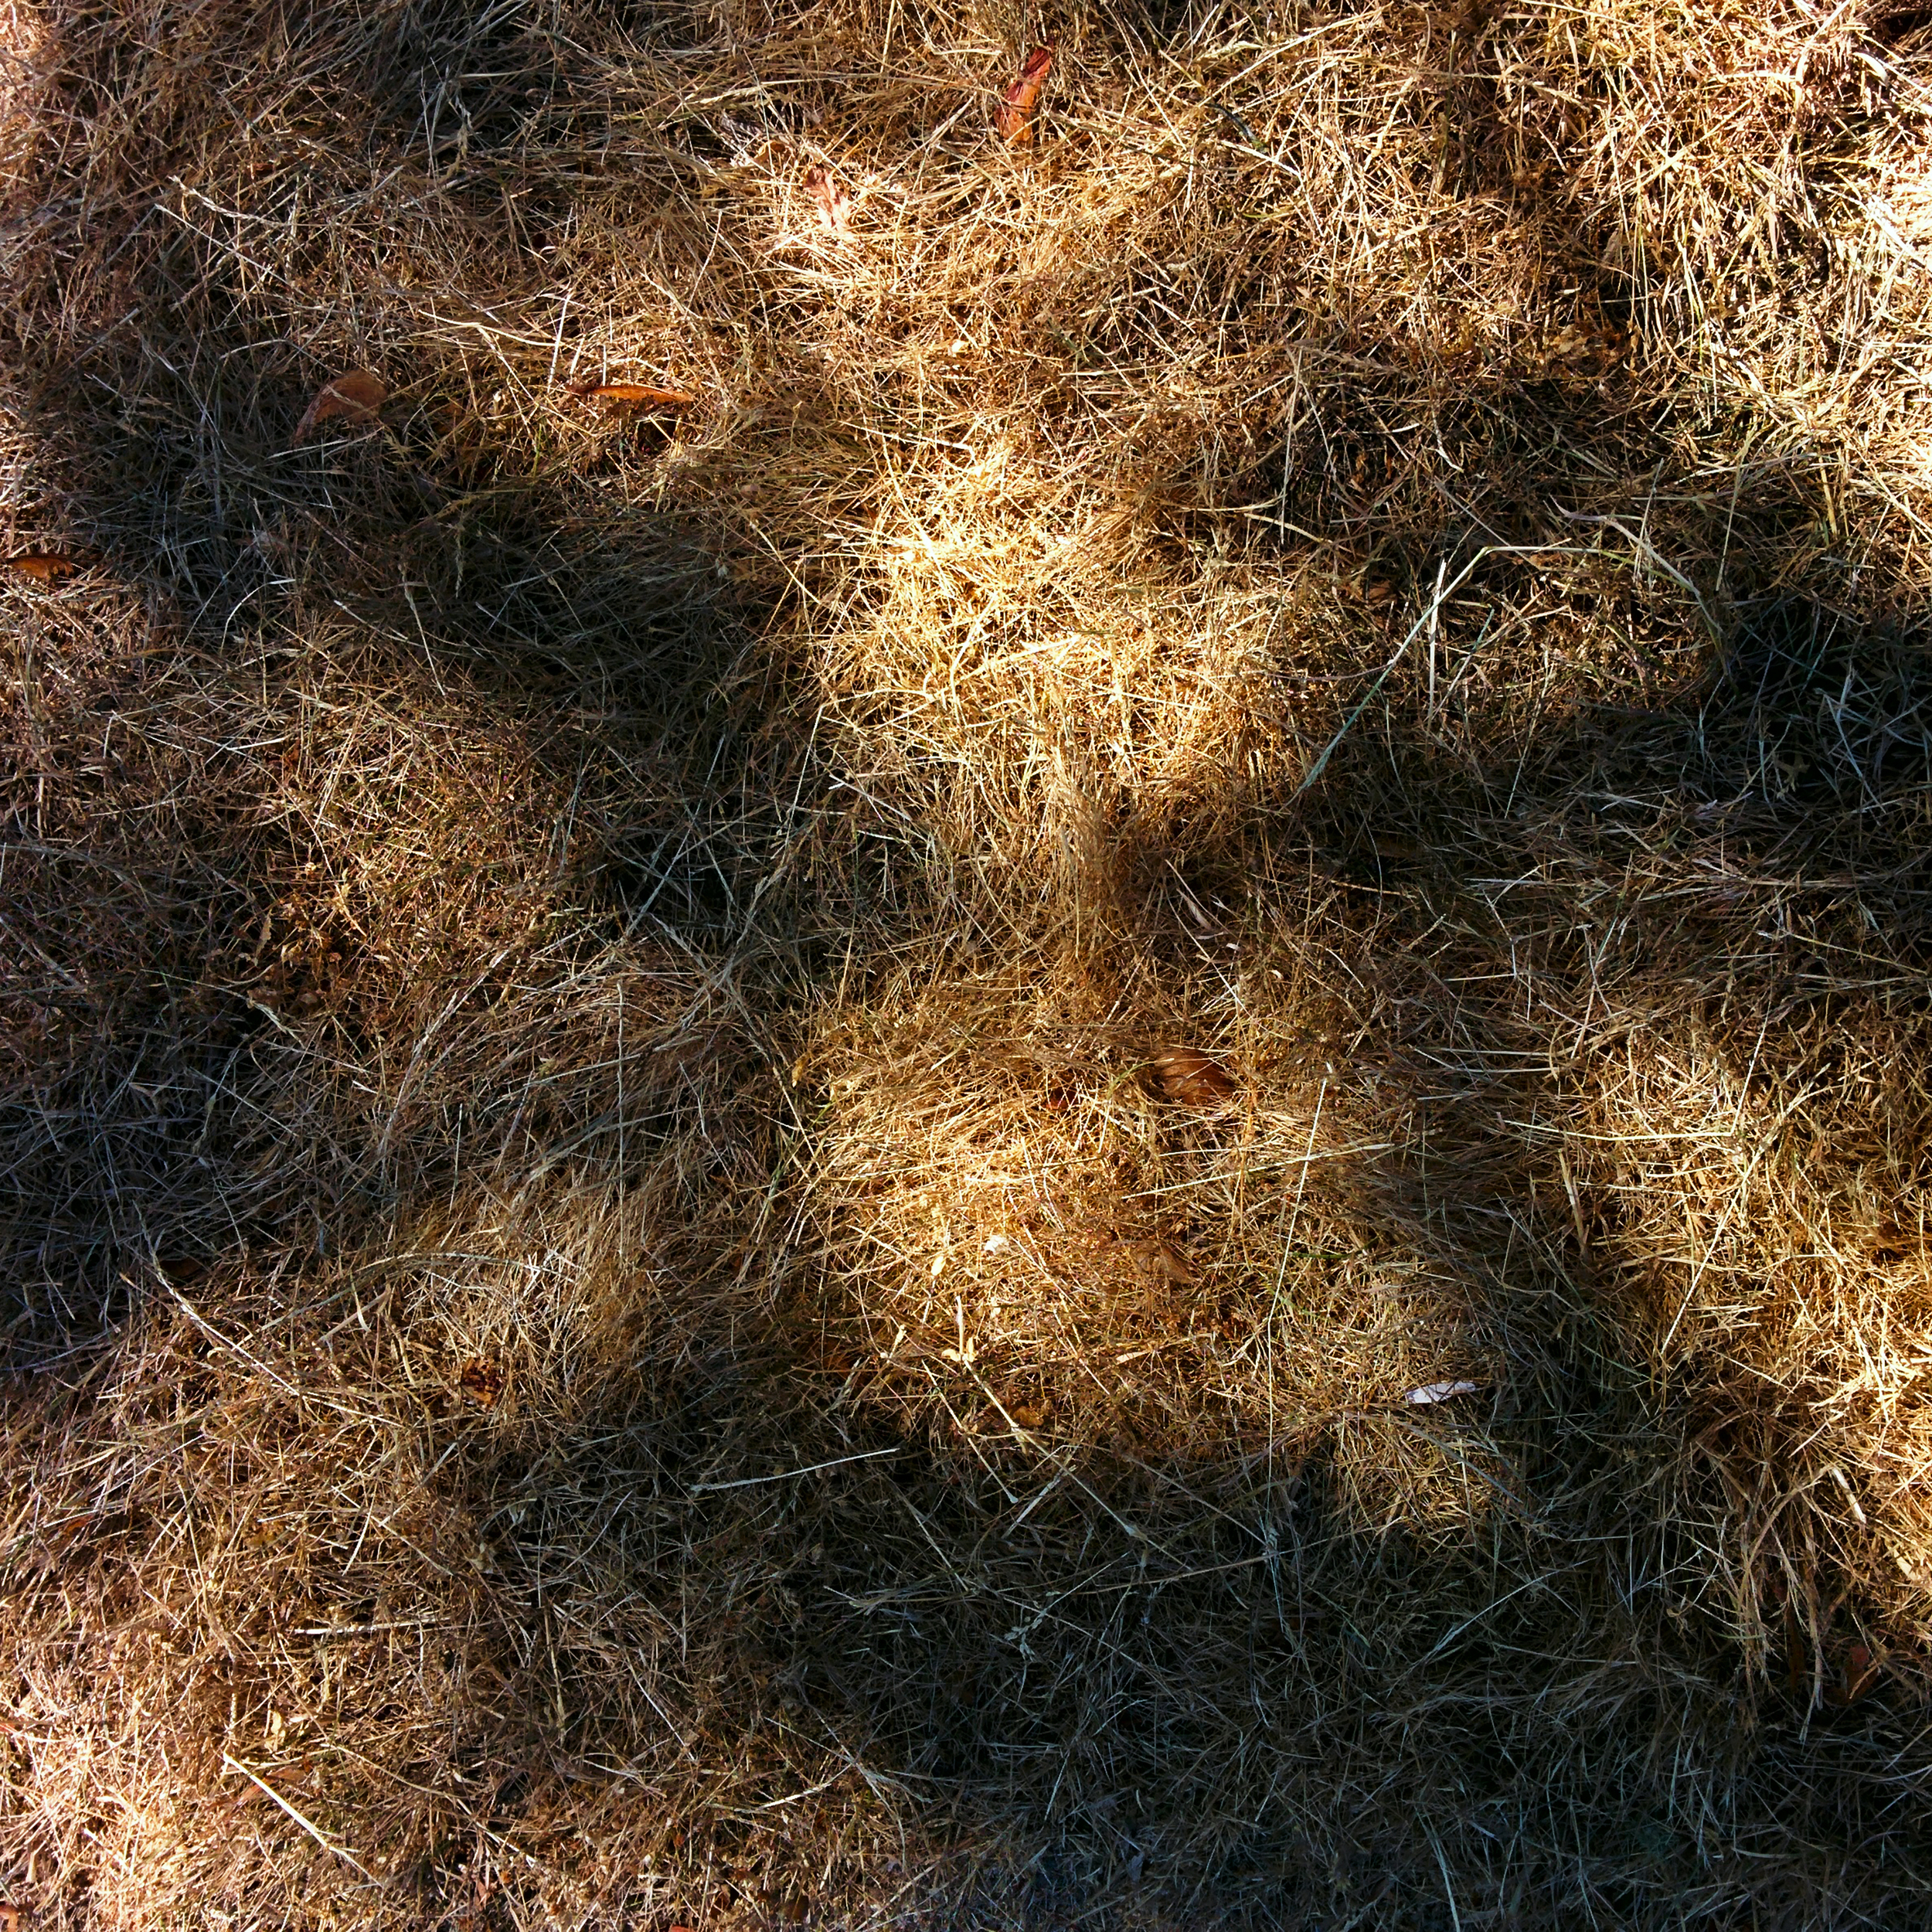 Tree Shadow on Dry Grass